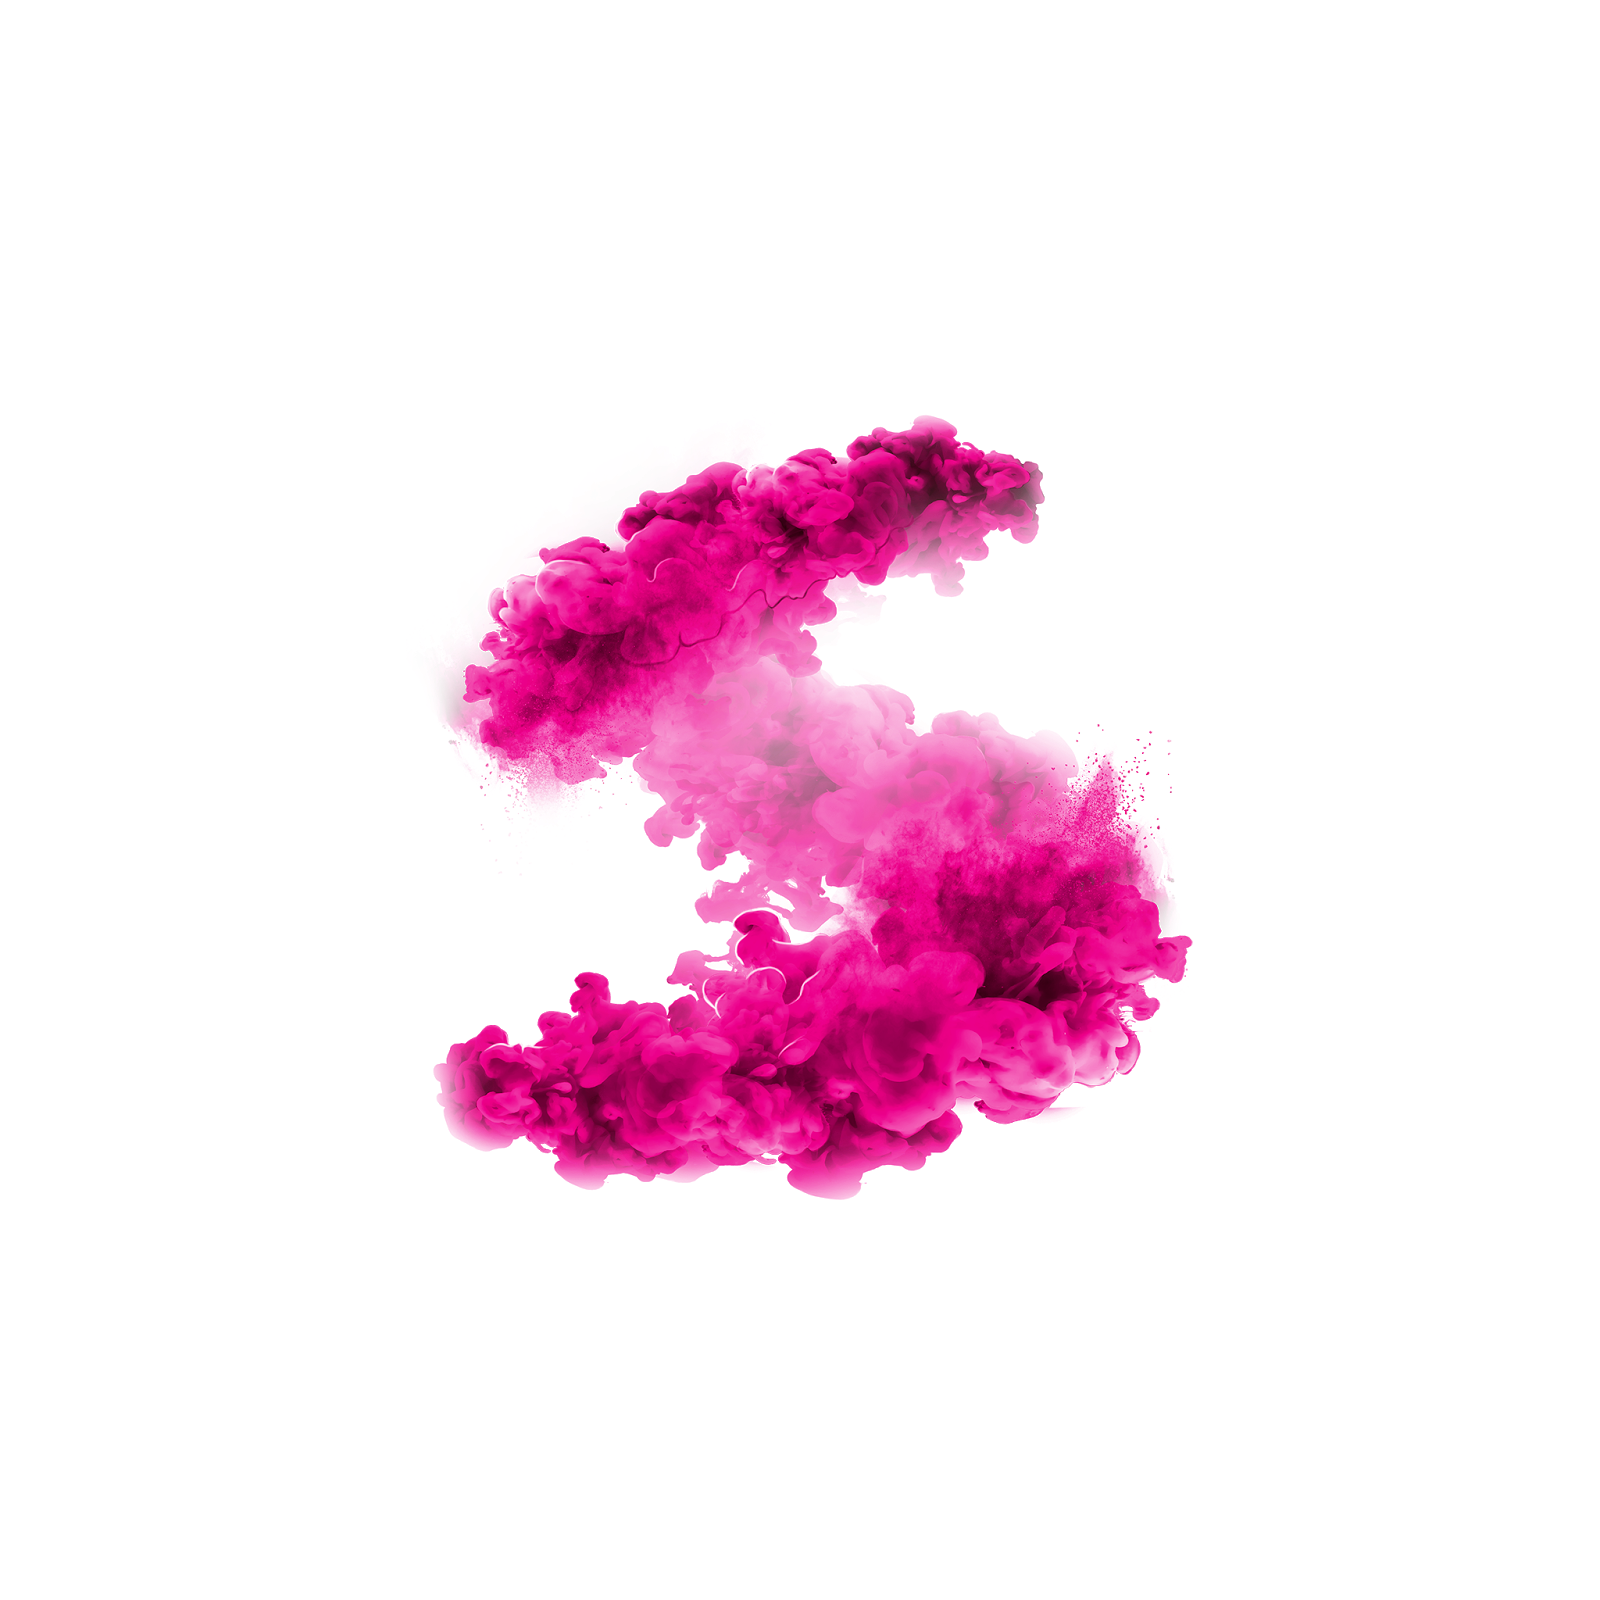 Pink smoke png. Picture arts